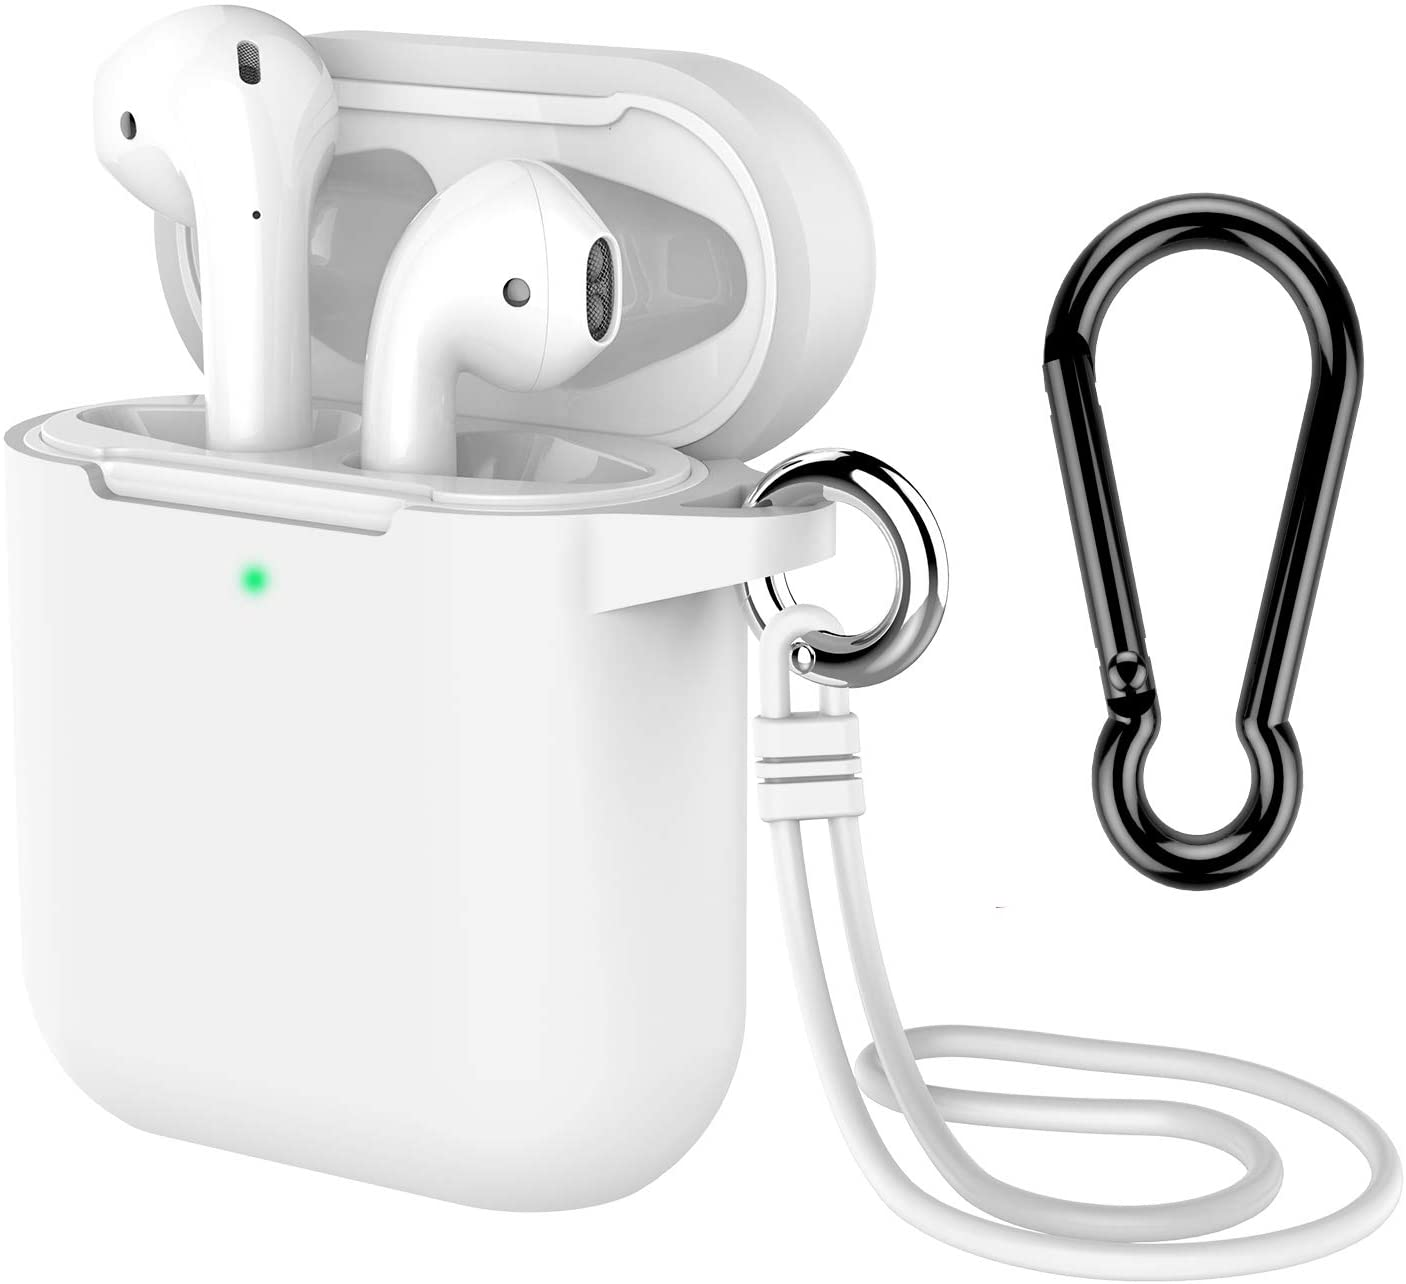 AirPods Case with Keychain, Coffea Silicone Protective Case with Stap for AirPods 2 & 1 [Front LED Visible] (White)